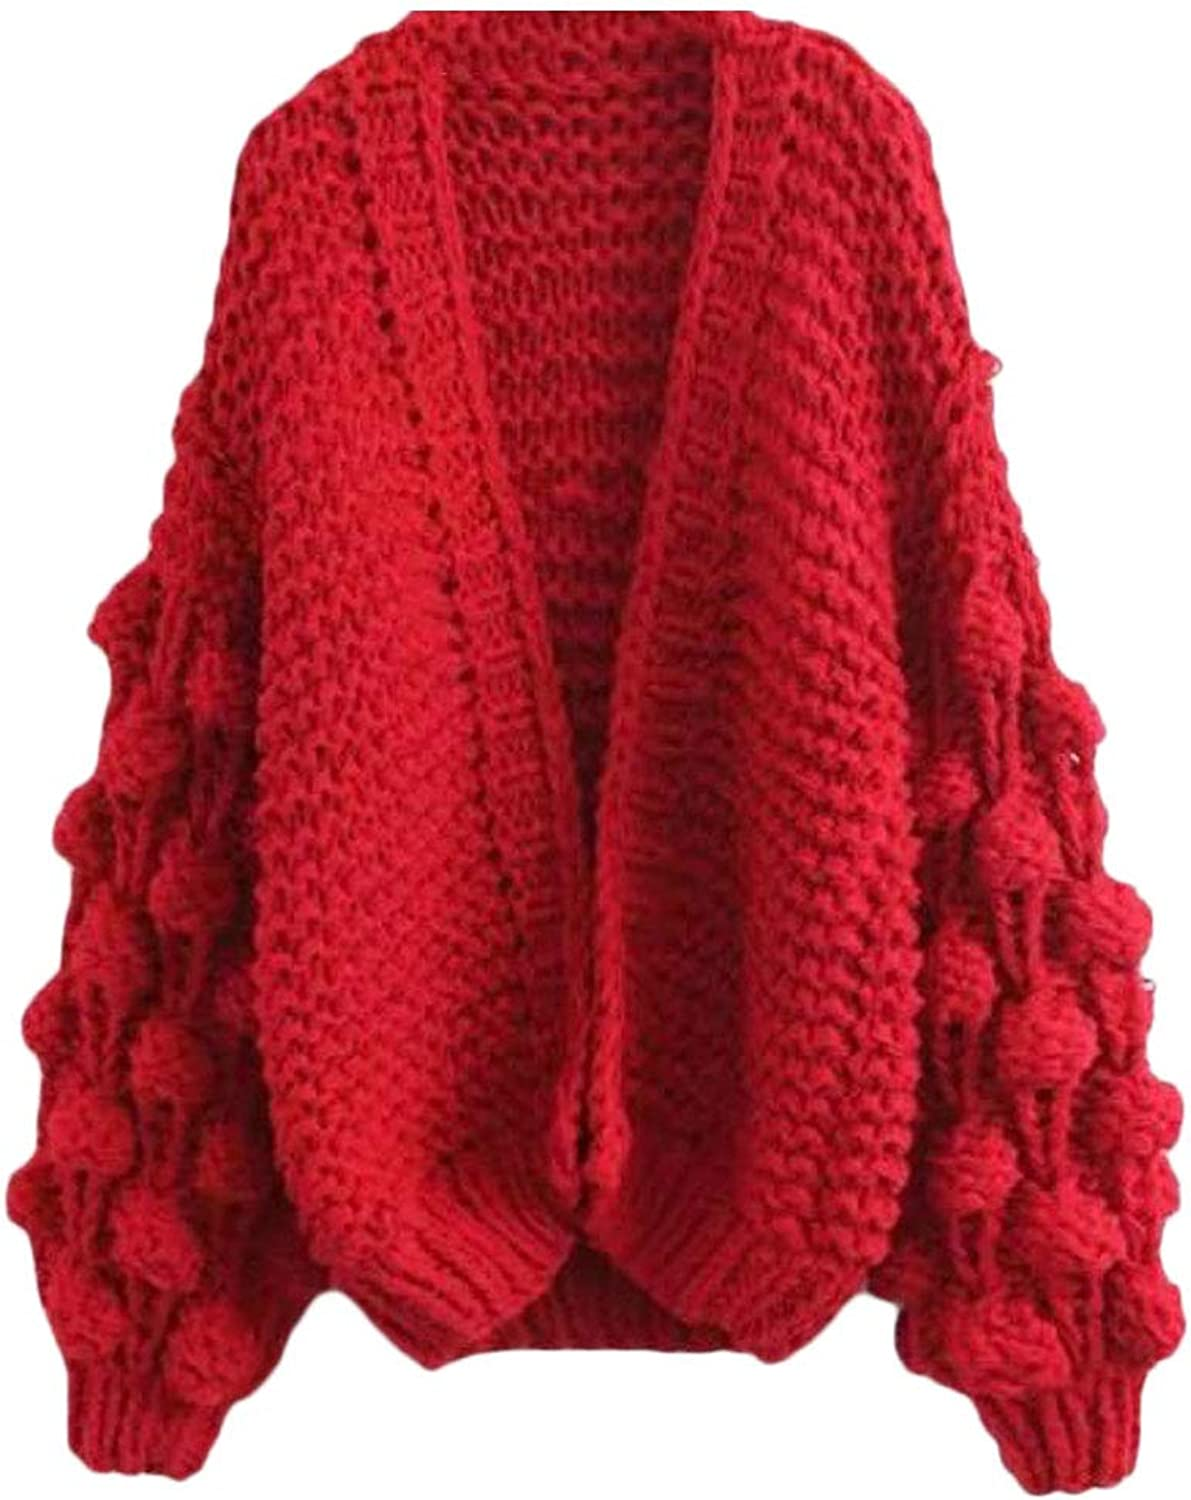 Nanquan Women Large Size AllMatch Stylish Knitted Solid color Cardigan Sweater